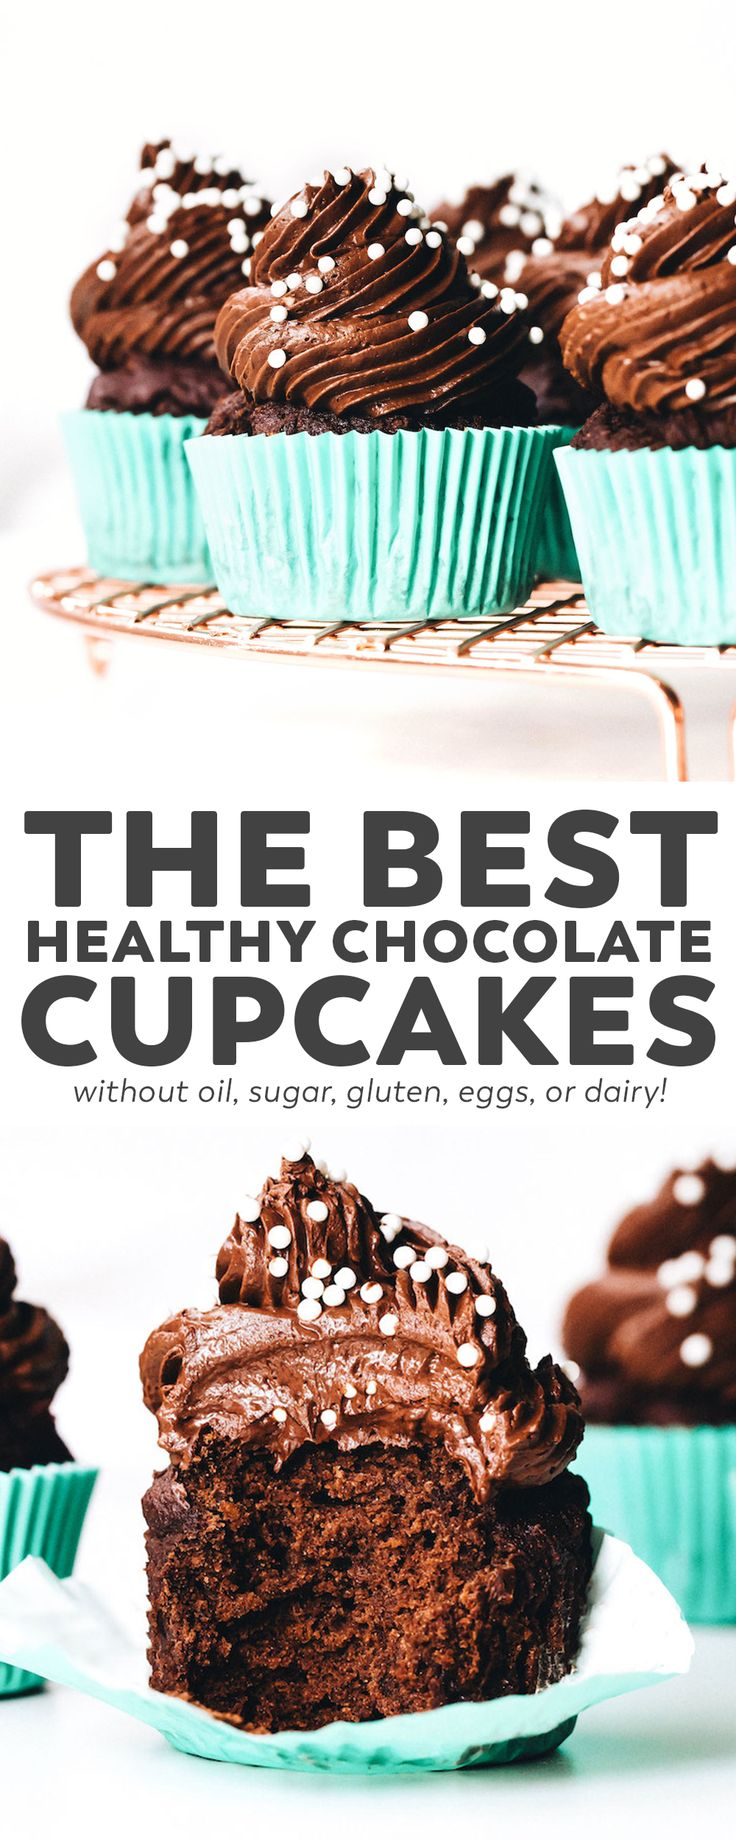 The BEST Healthy Chocolate Cupcakes